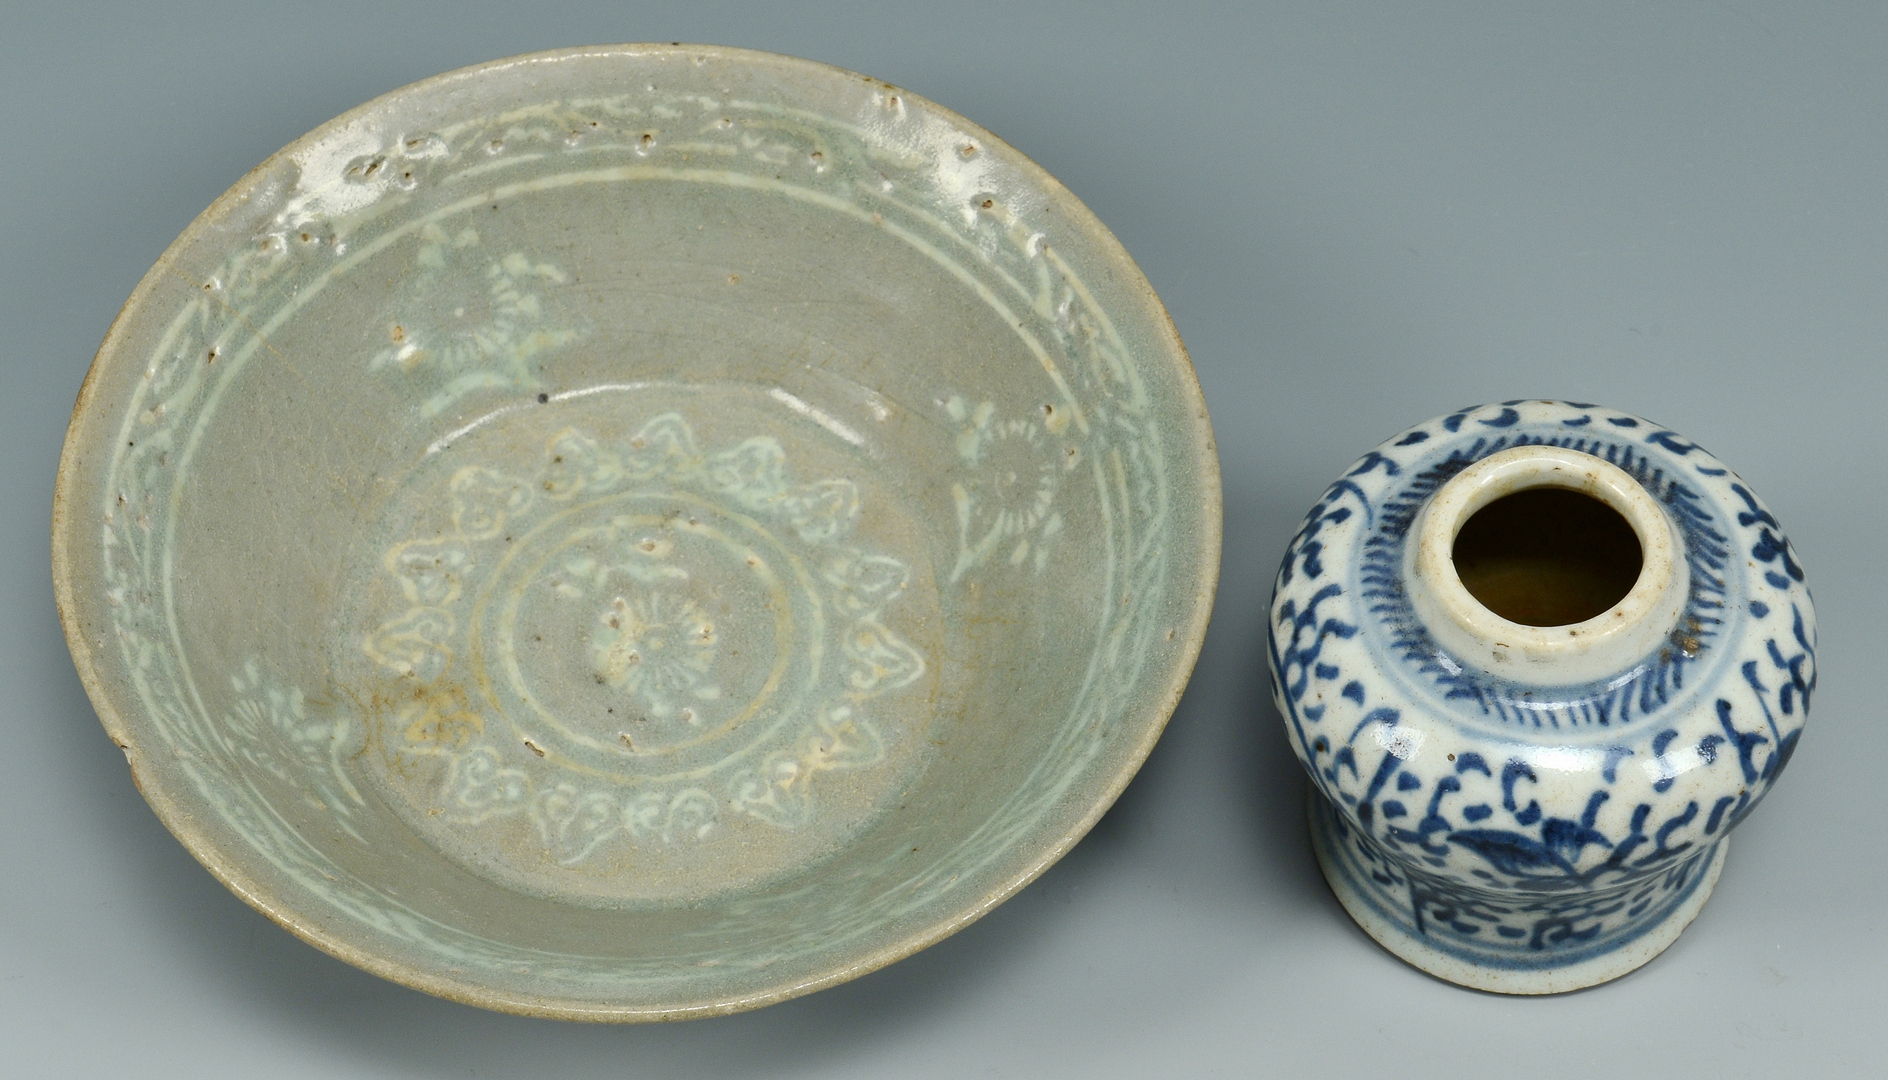 Lot 3088094: 4 pcs. Asian Ceramics, incl archaic celadon